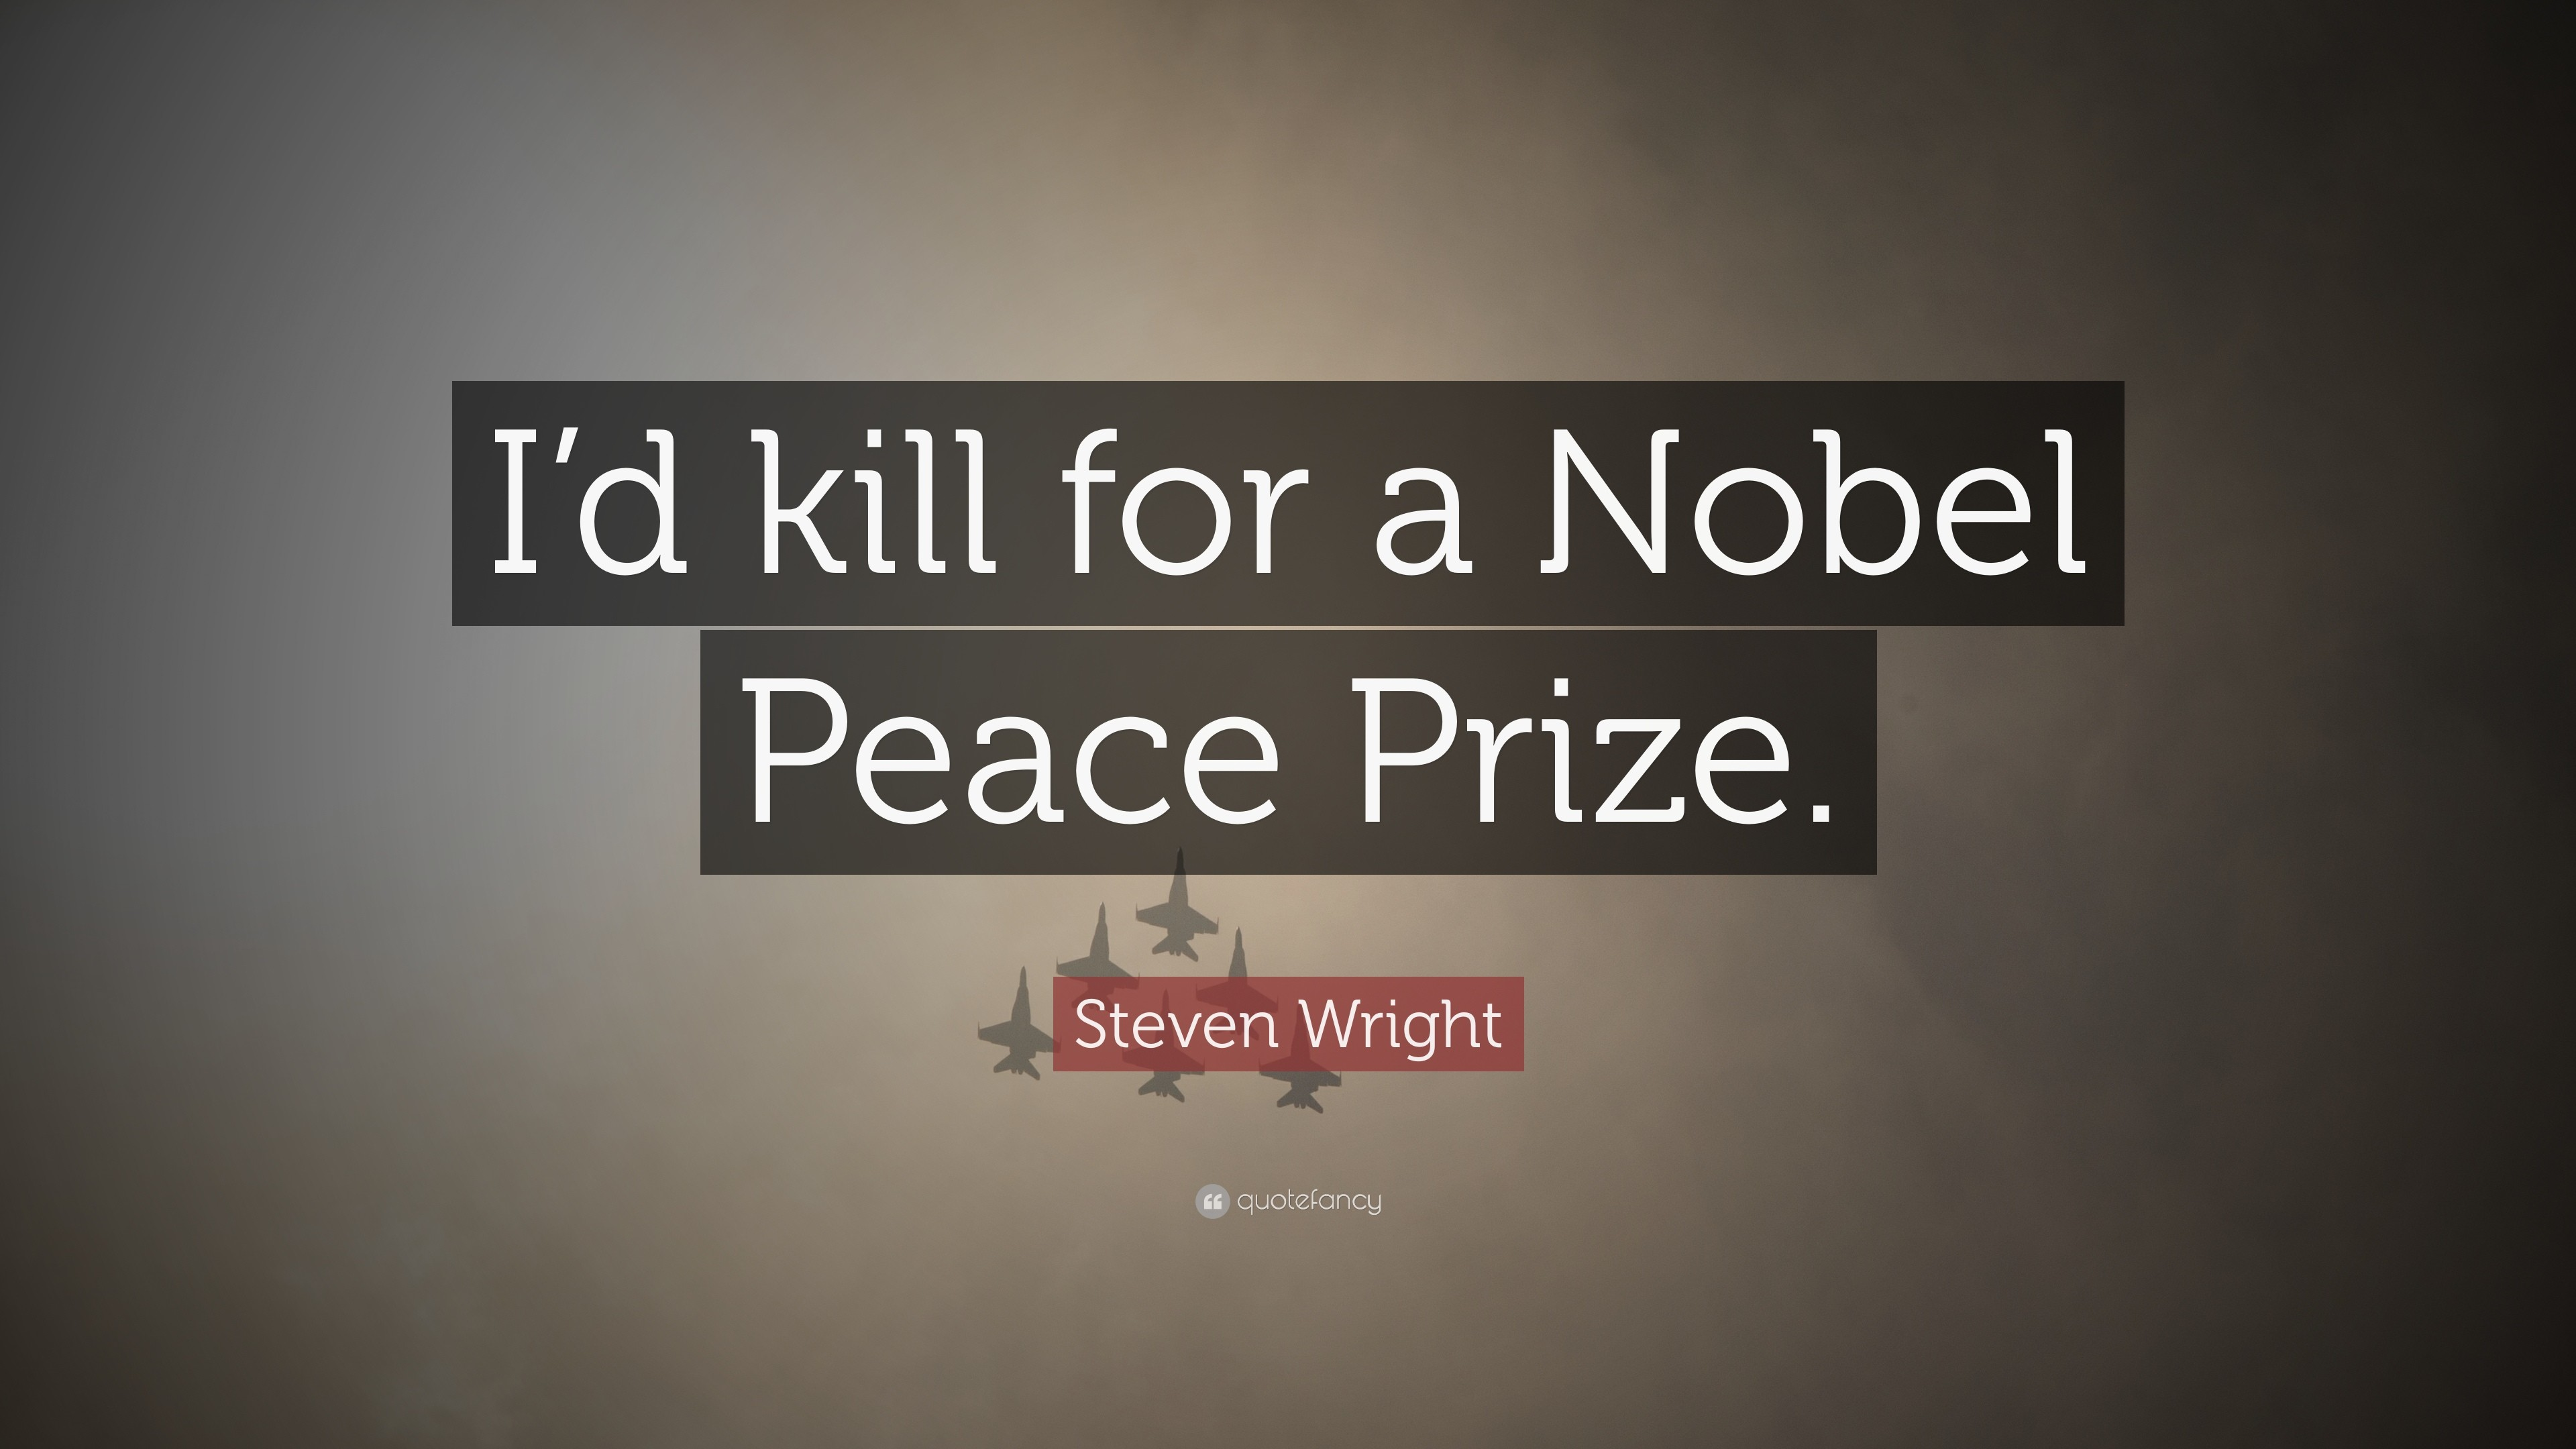 Funny quote wallpapers 64 images 3840x2160 funny quotes id kill for a nobel peace prize voltagebd Image collections